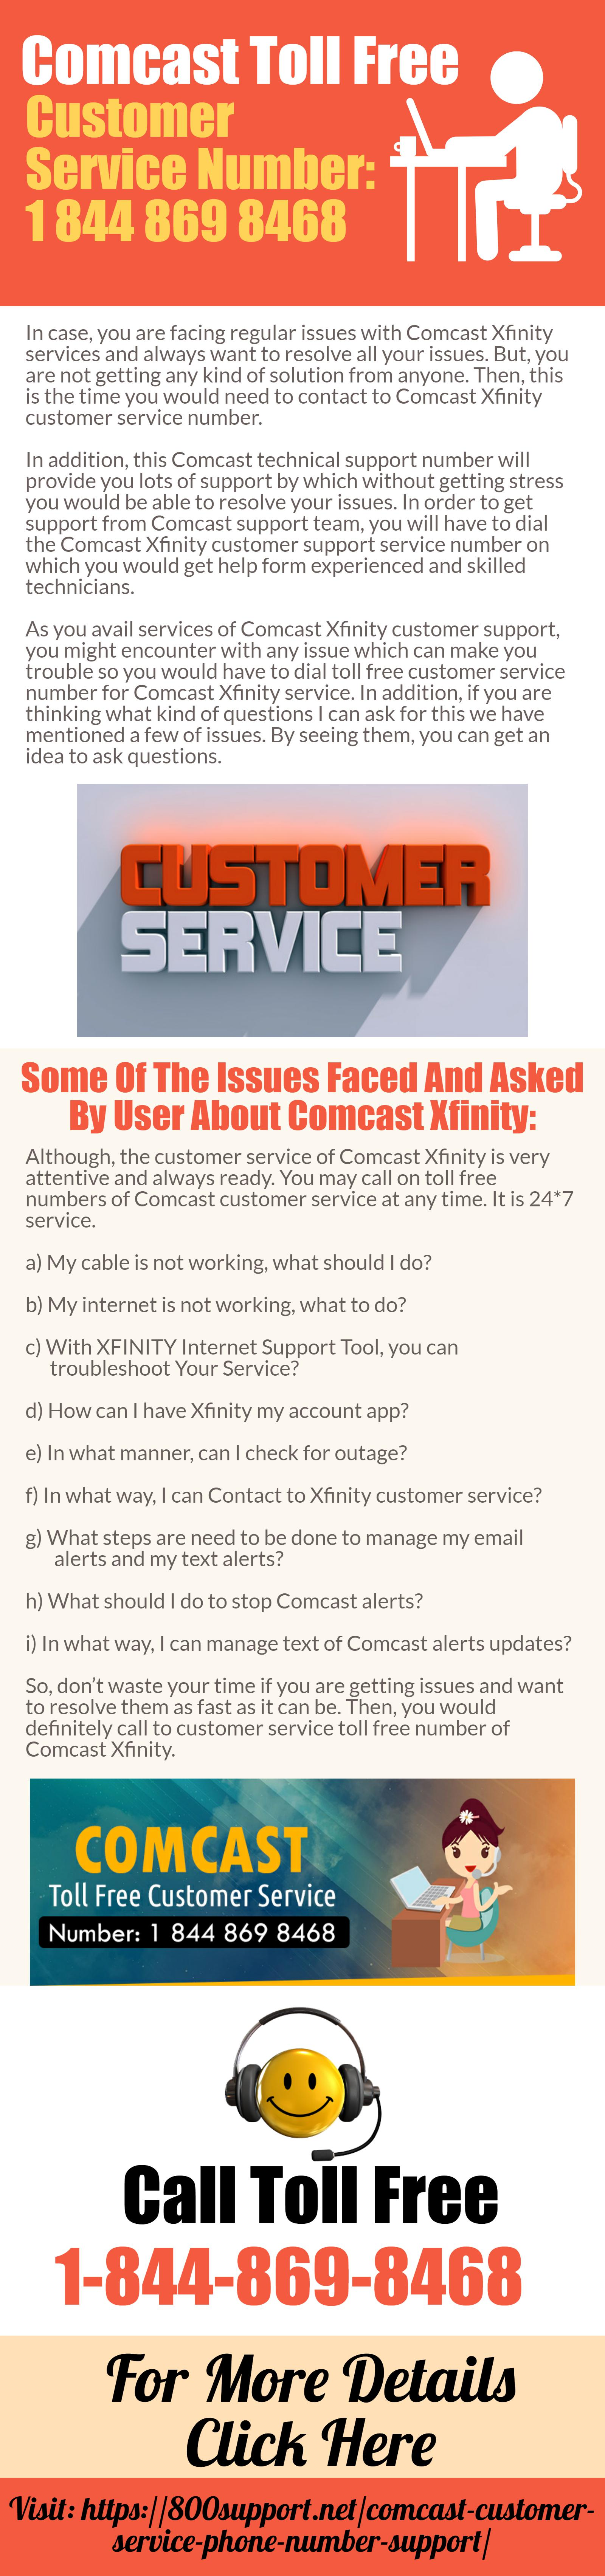 comcast cable customer service